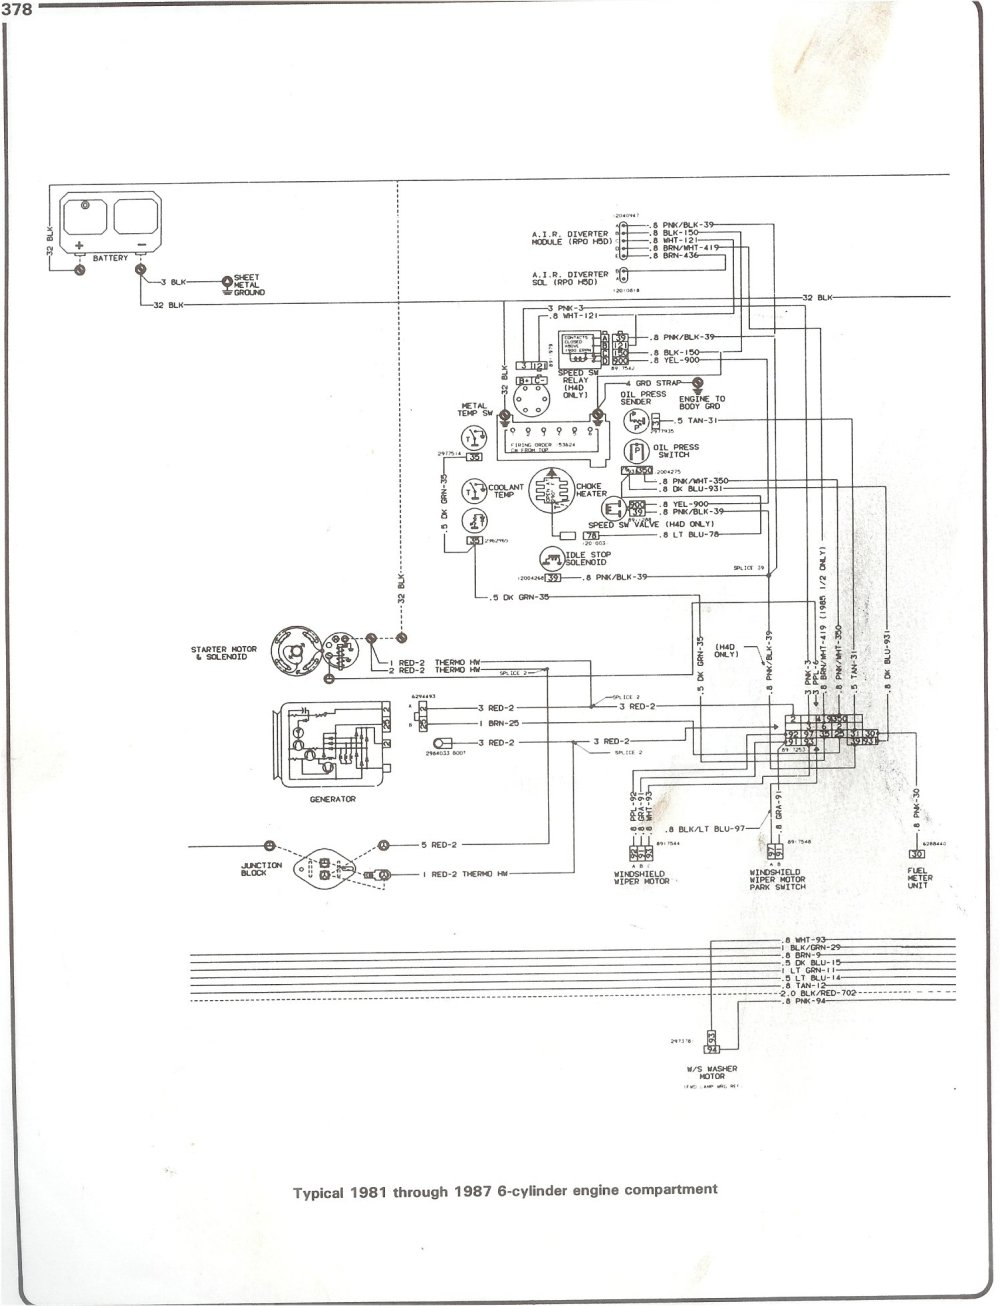 medium resolution of complete 73 87 wiring diagrams hvac wiring diagram 86 chevy truck 81 87 i6 engine compartment